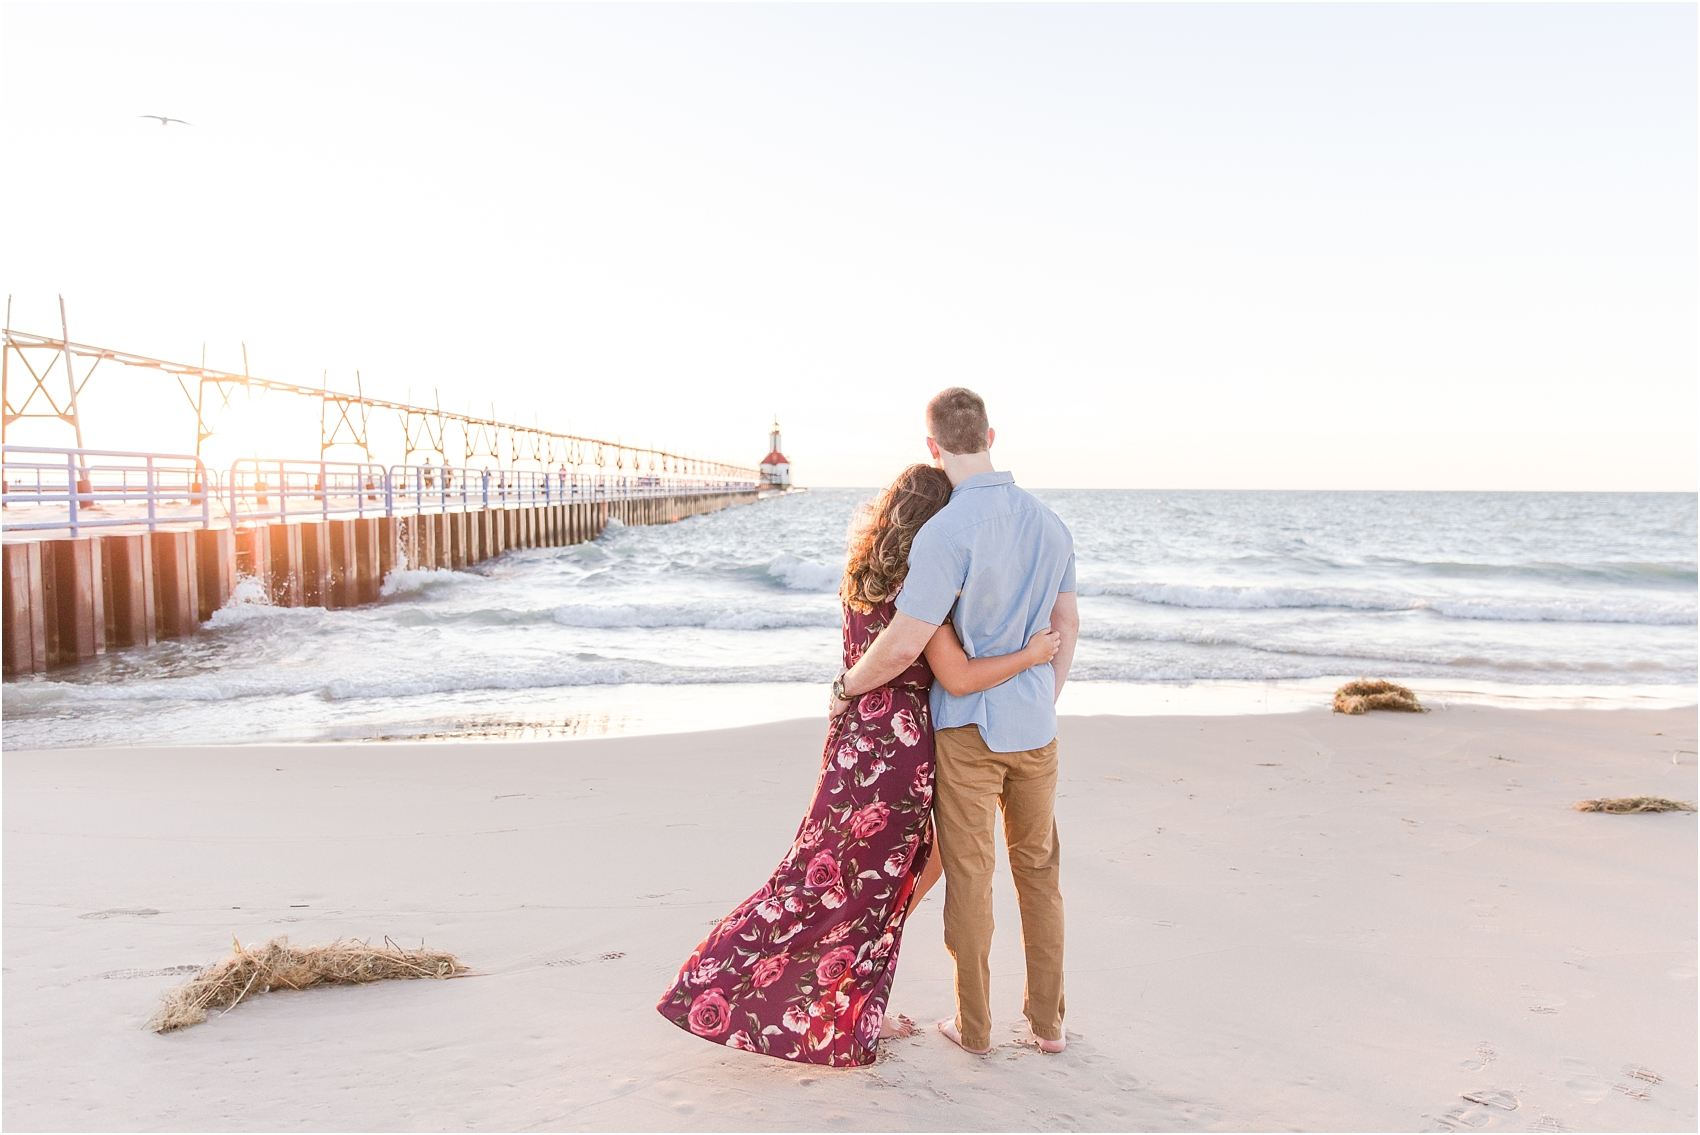 emotional-candid-romantic-engagement-photos-in-detroit-chicago-northern-michigan-by-courtney-carolyn-photography_0001.jpg